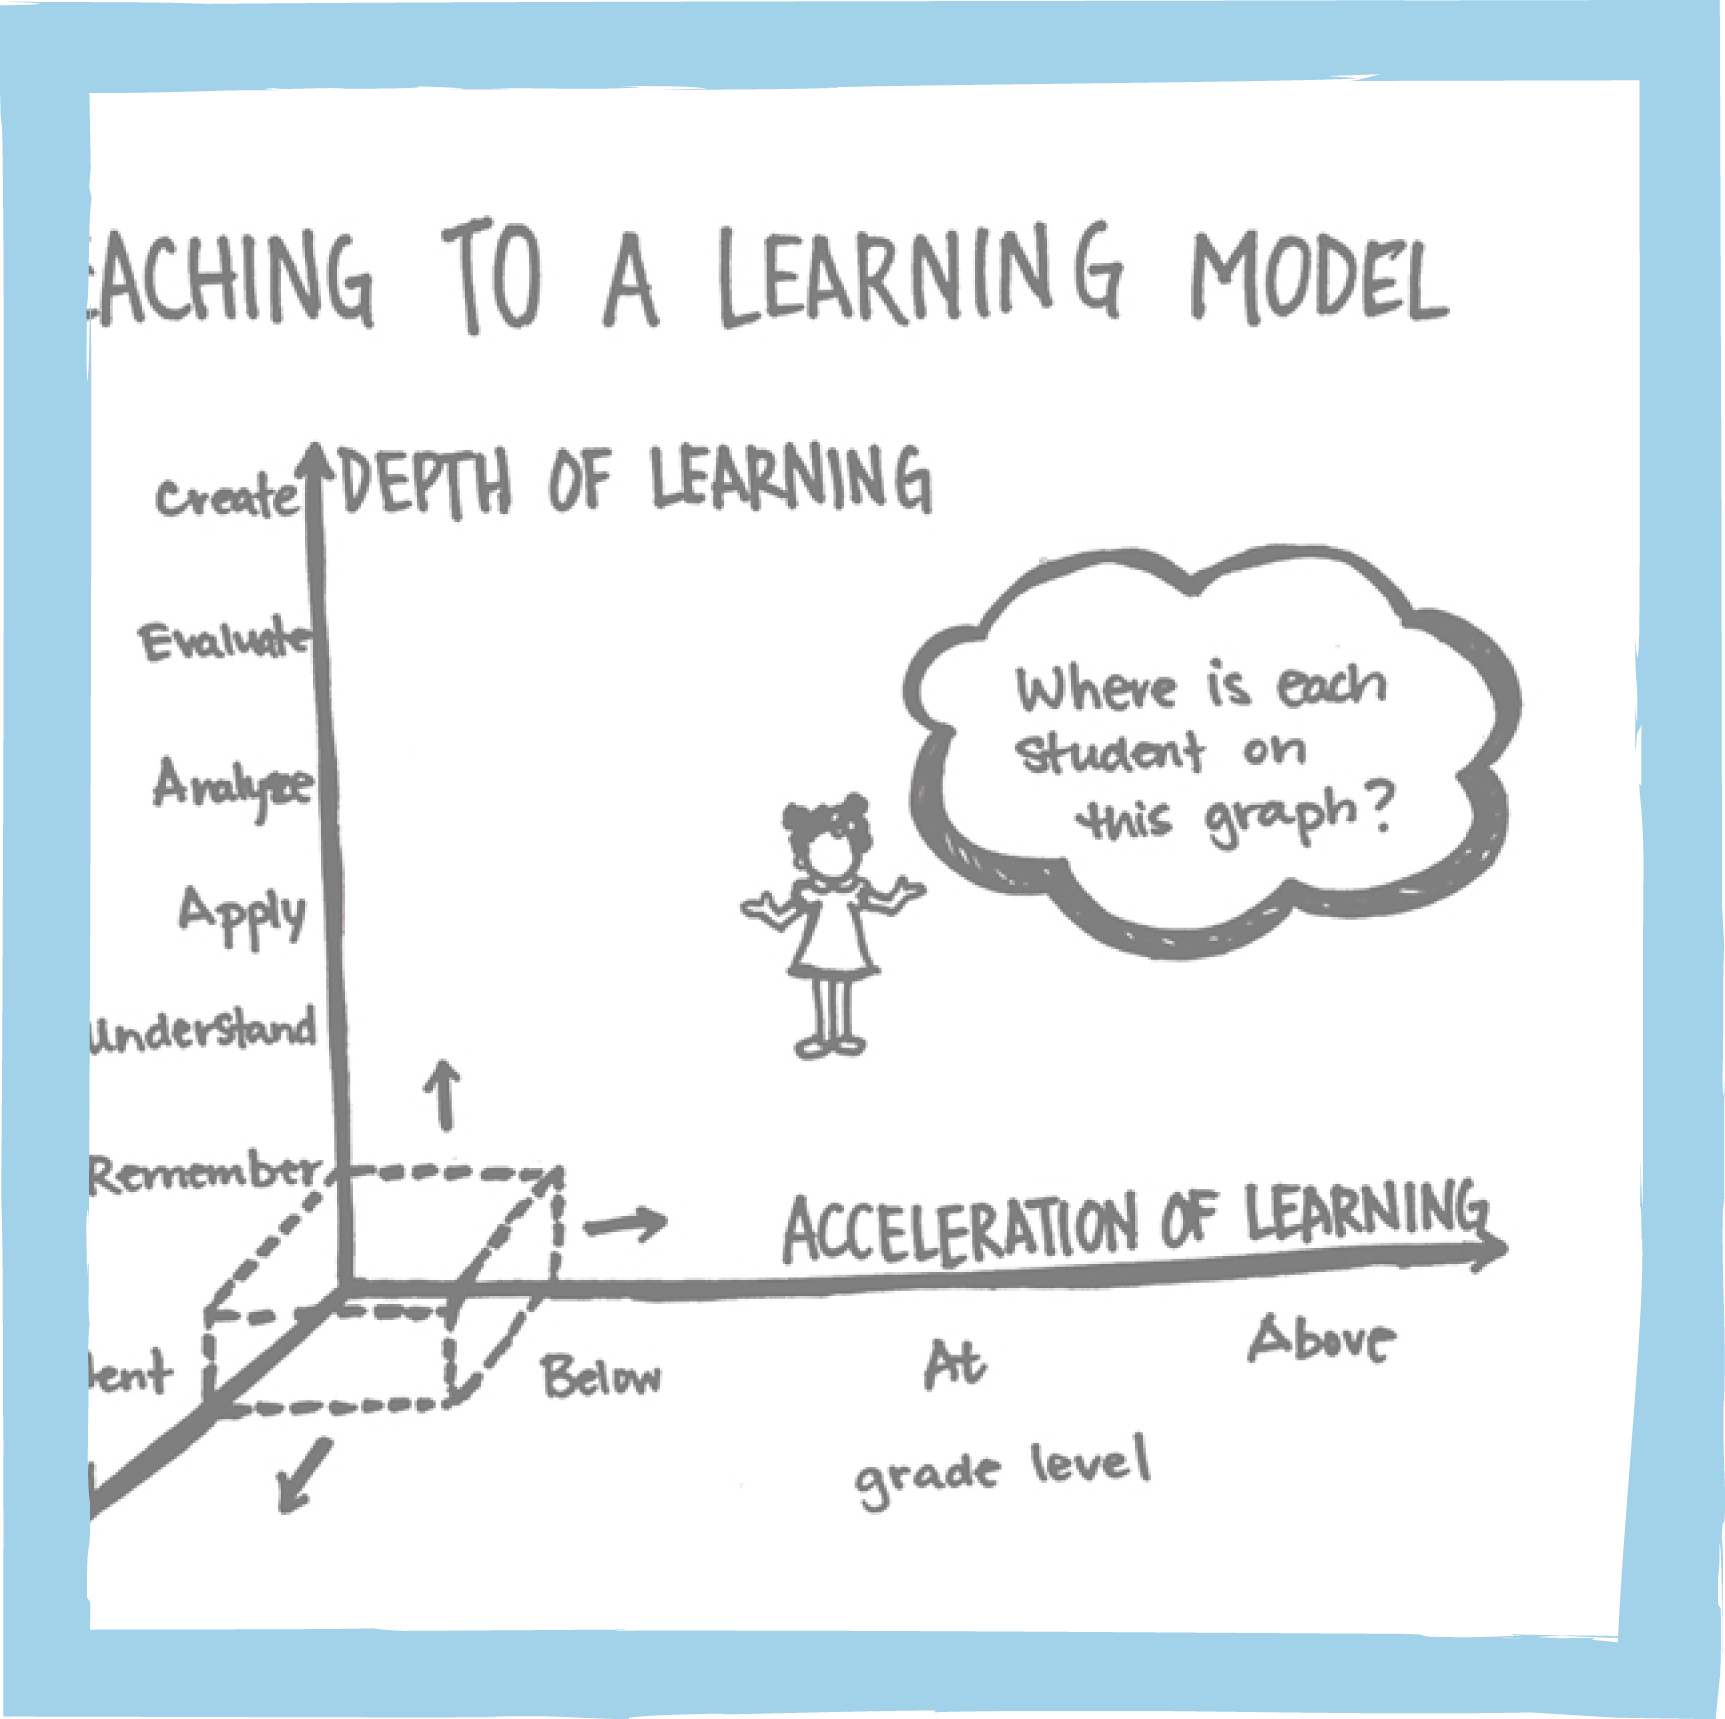 From a teaching model to a learning model